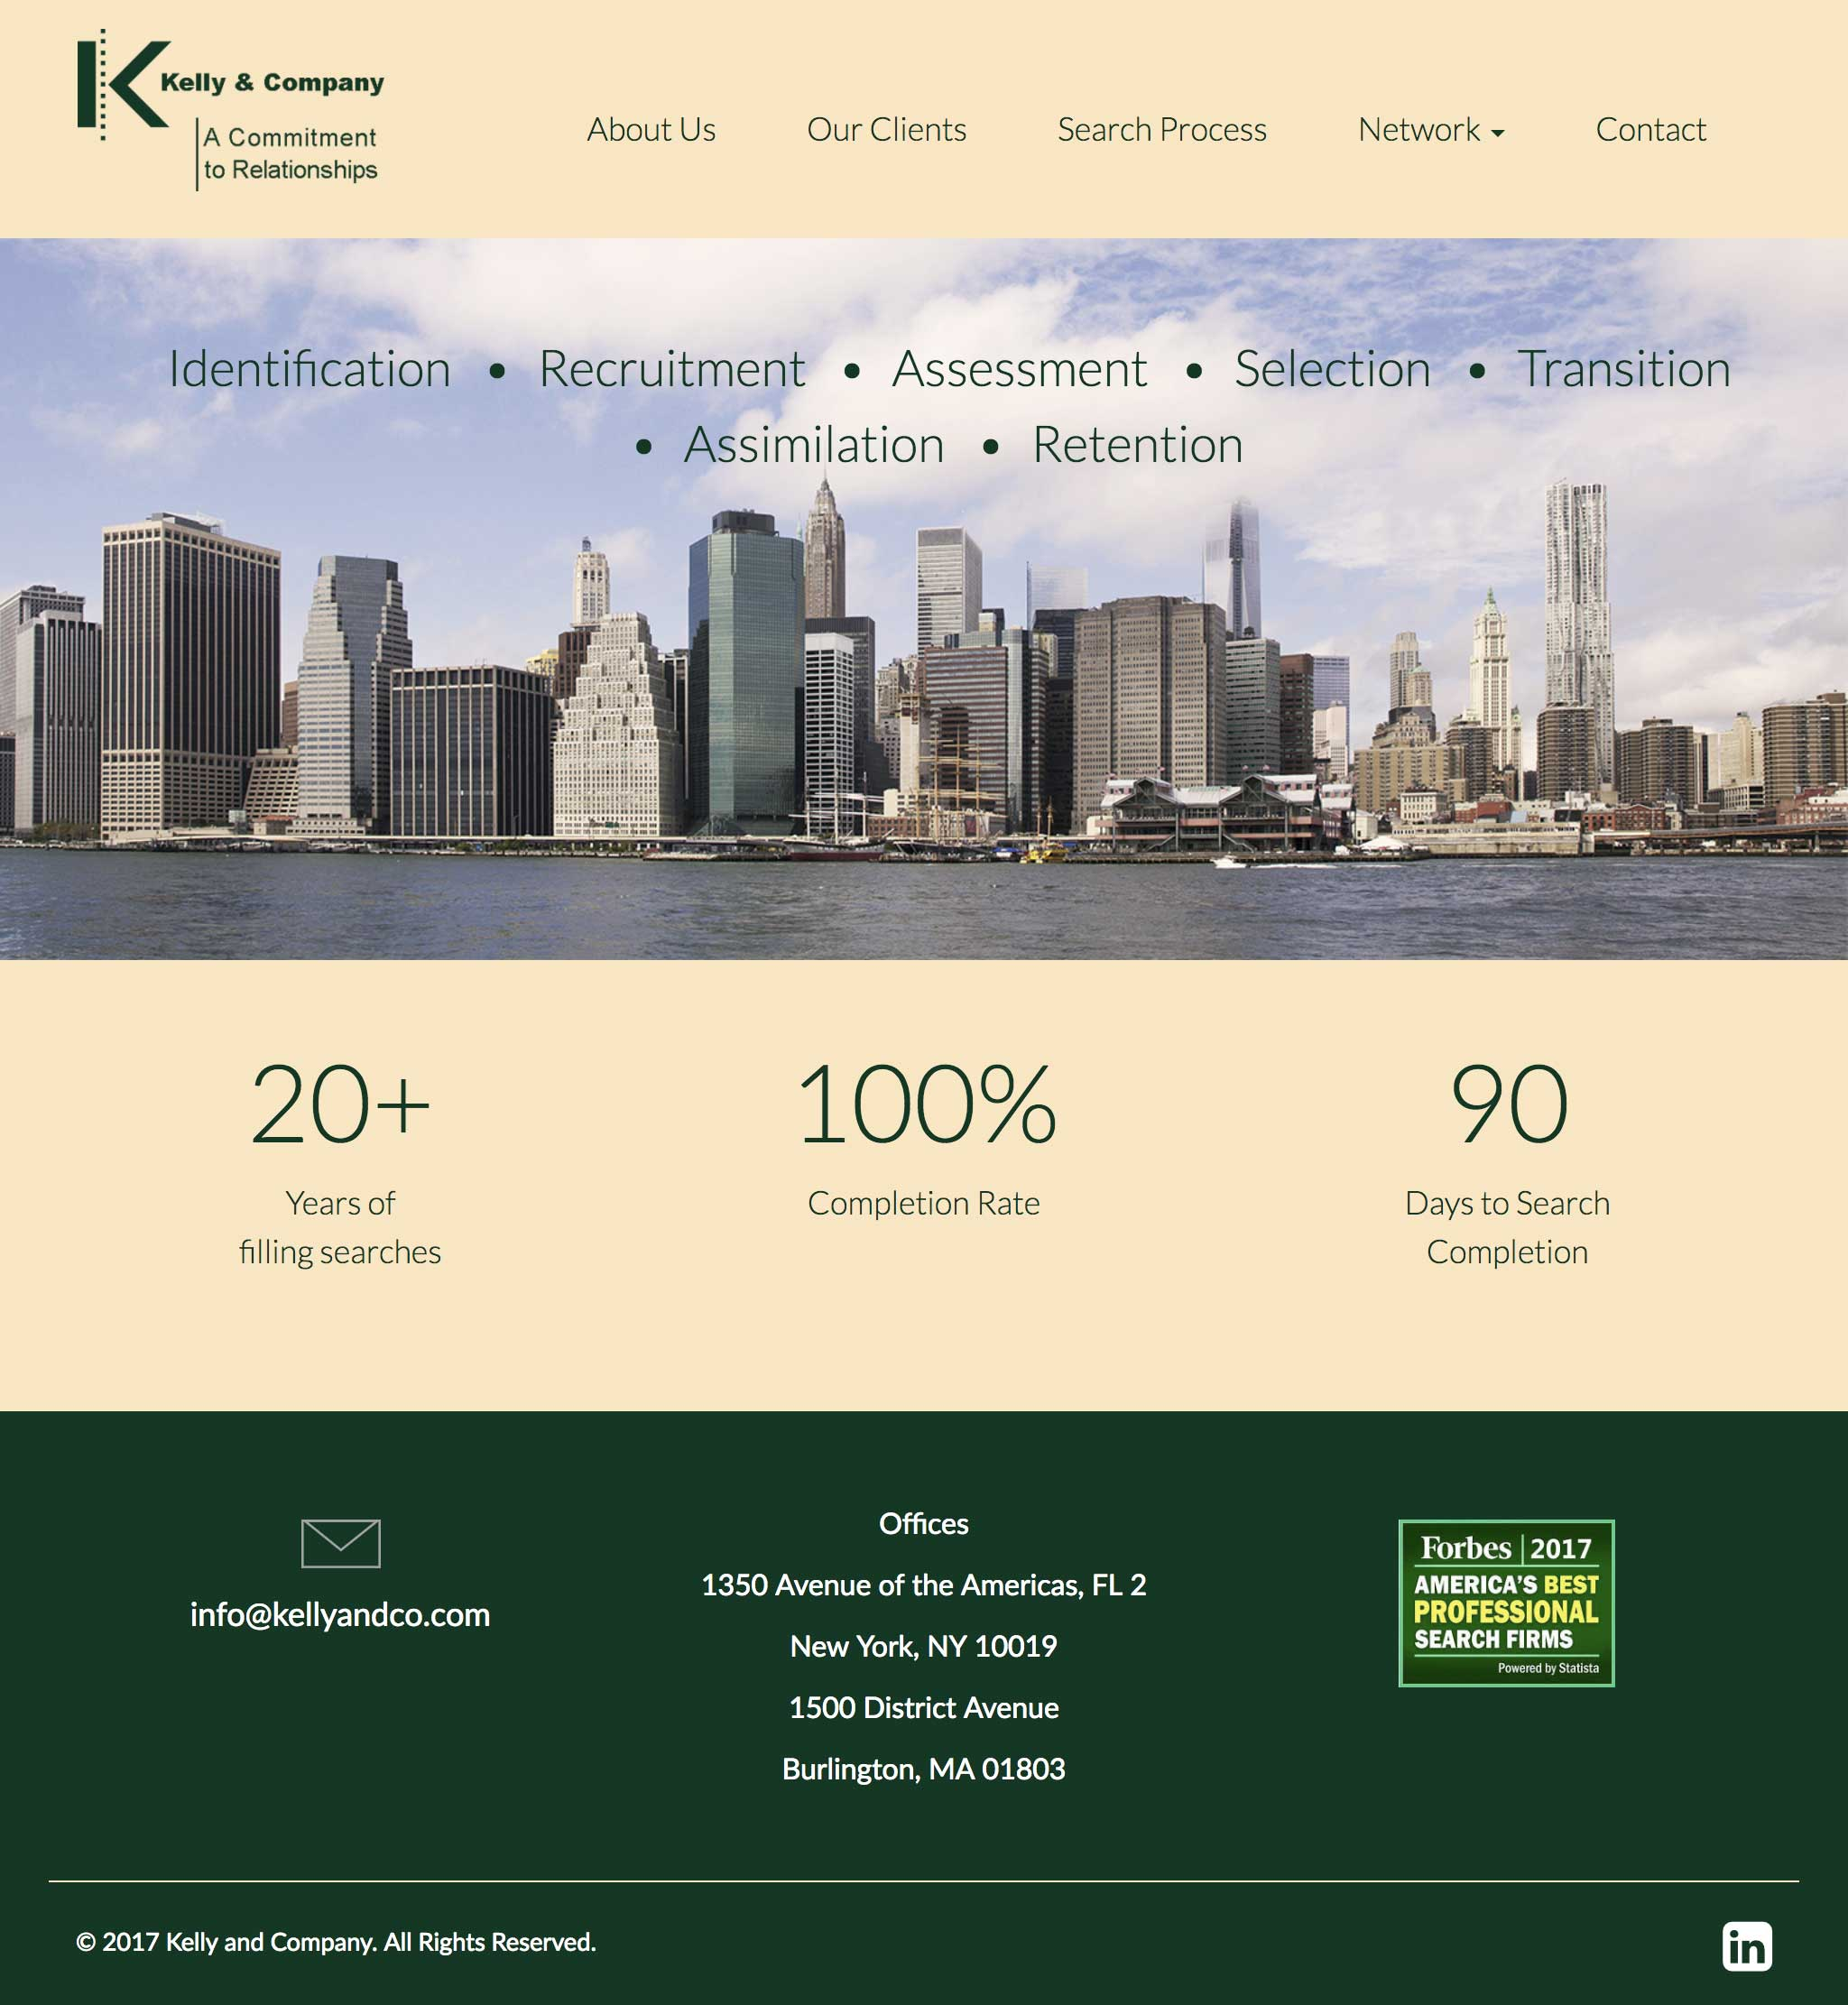 Kelly and Company's website